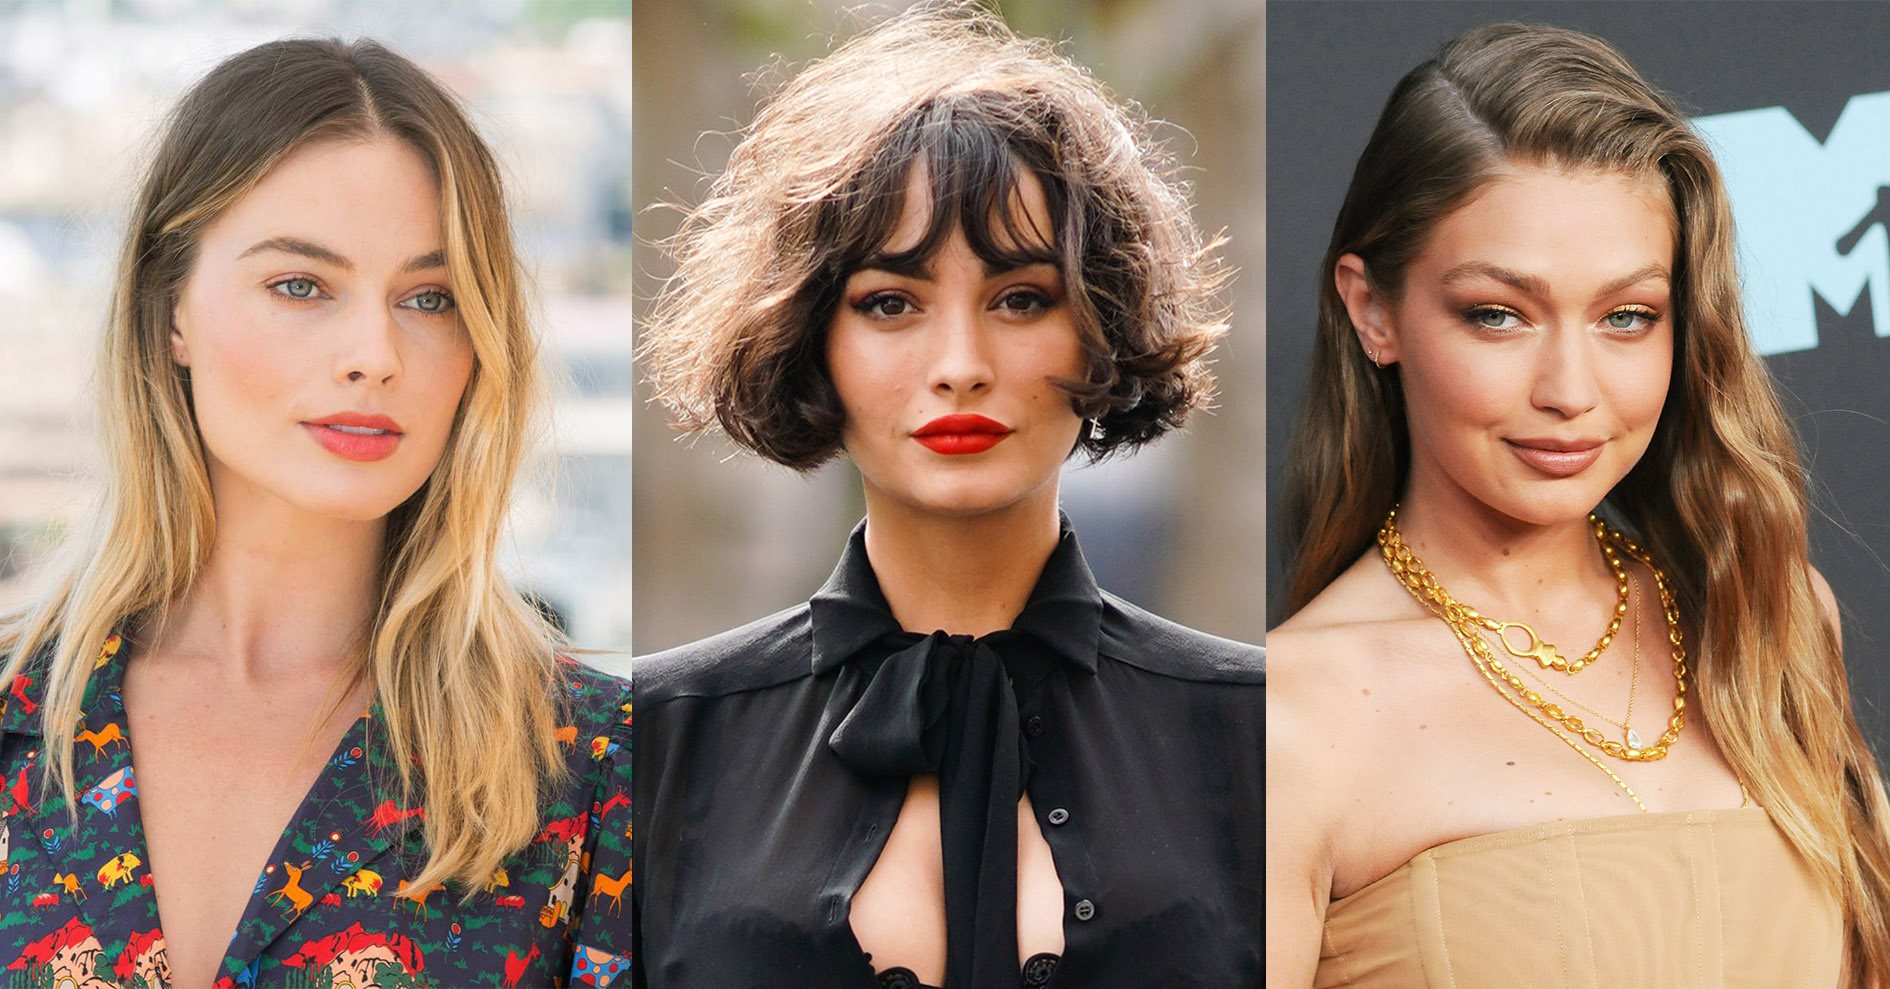 Hair Cut \u0026 Style Trends Spring Summer 2020 Hairstyles You